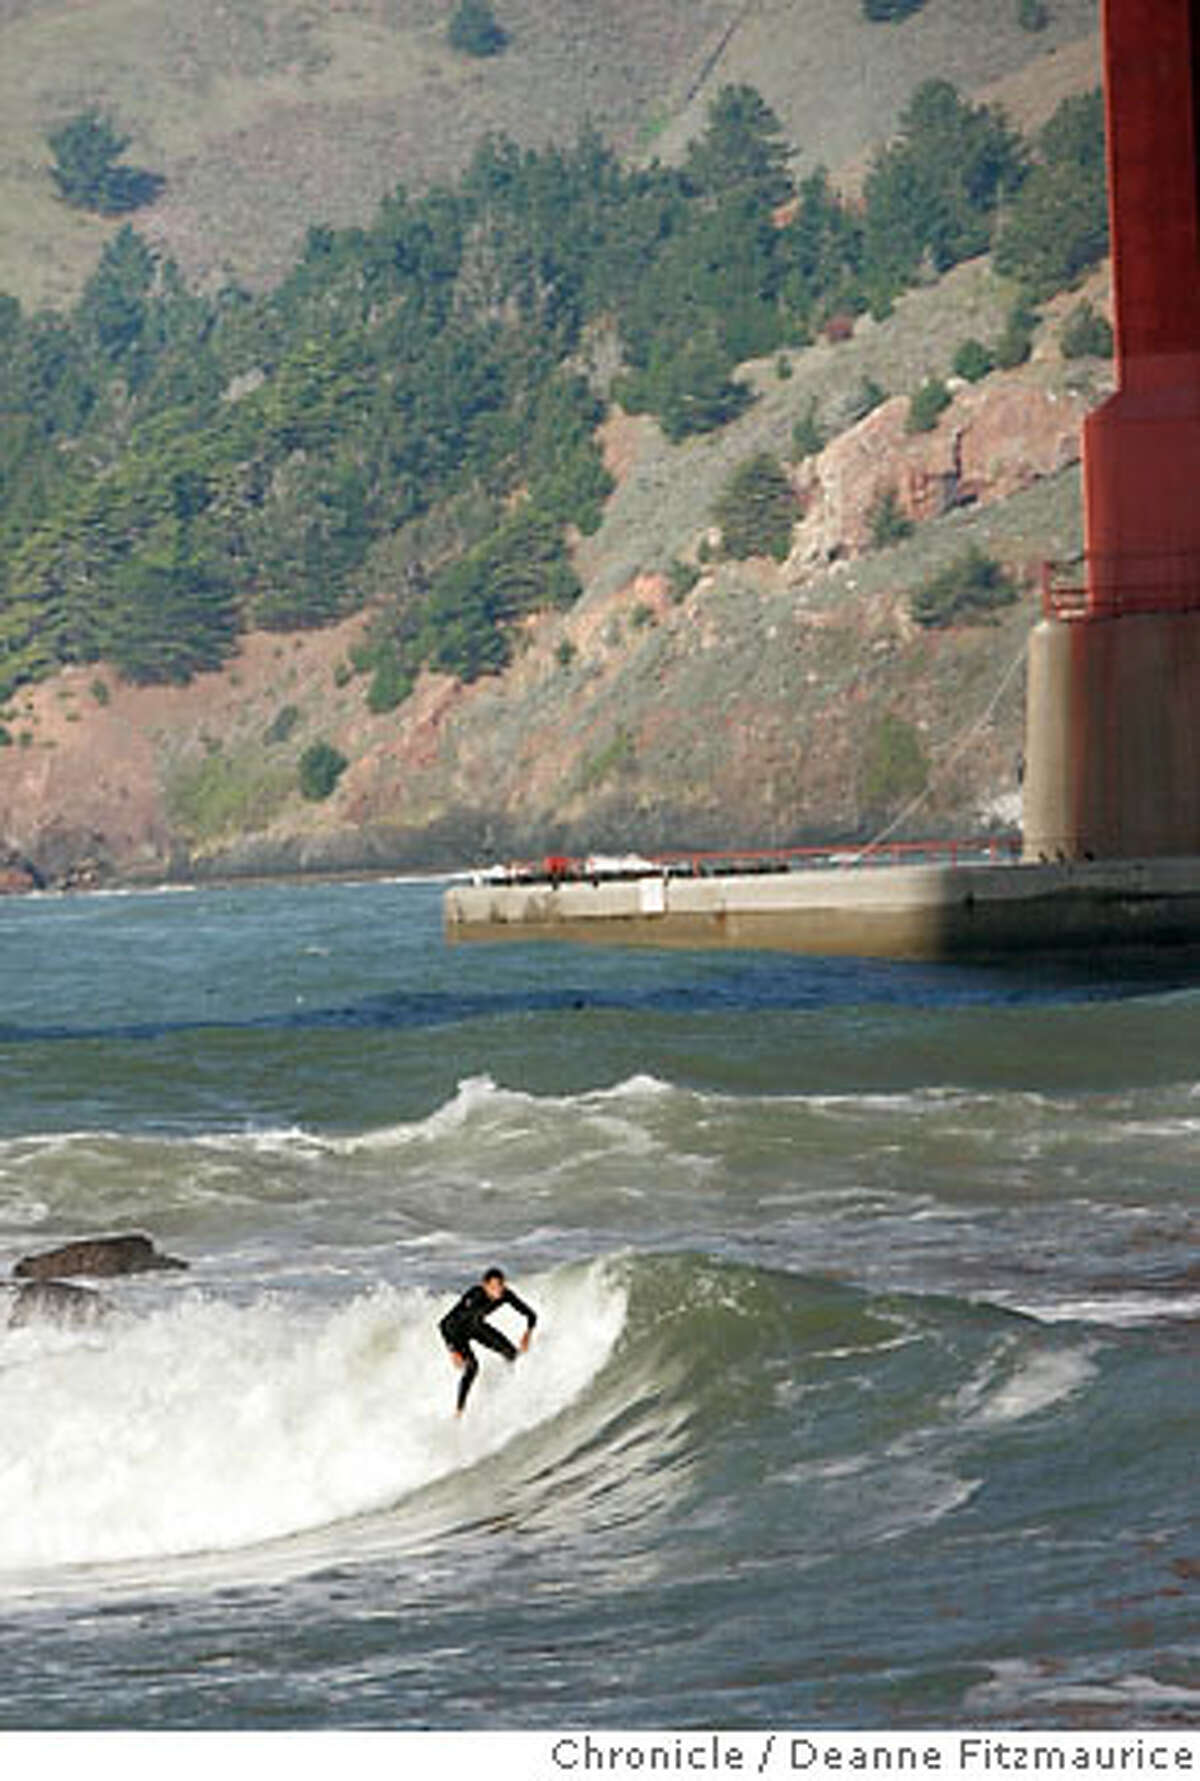 weather_001_df.jpg Surfers came to Fort Point under the Golden Gate Bridge for larger than usual waves. Photographed in San Francisco on 12/27/06. (Deanne Fitzmaurice/ The Chronicle)